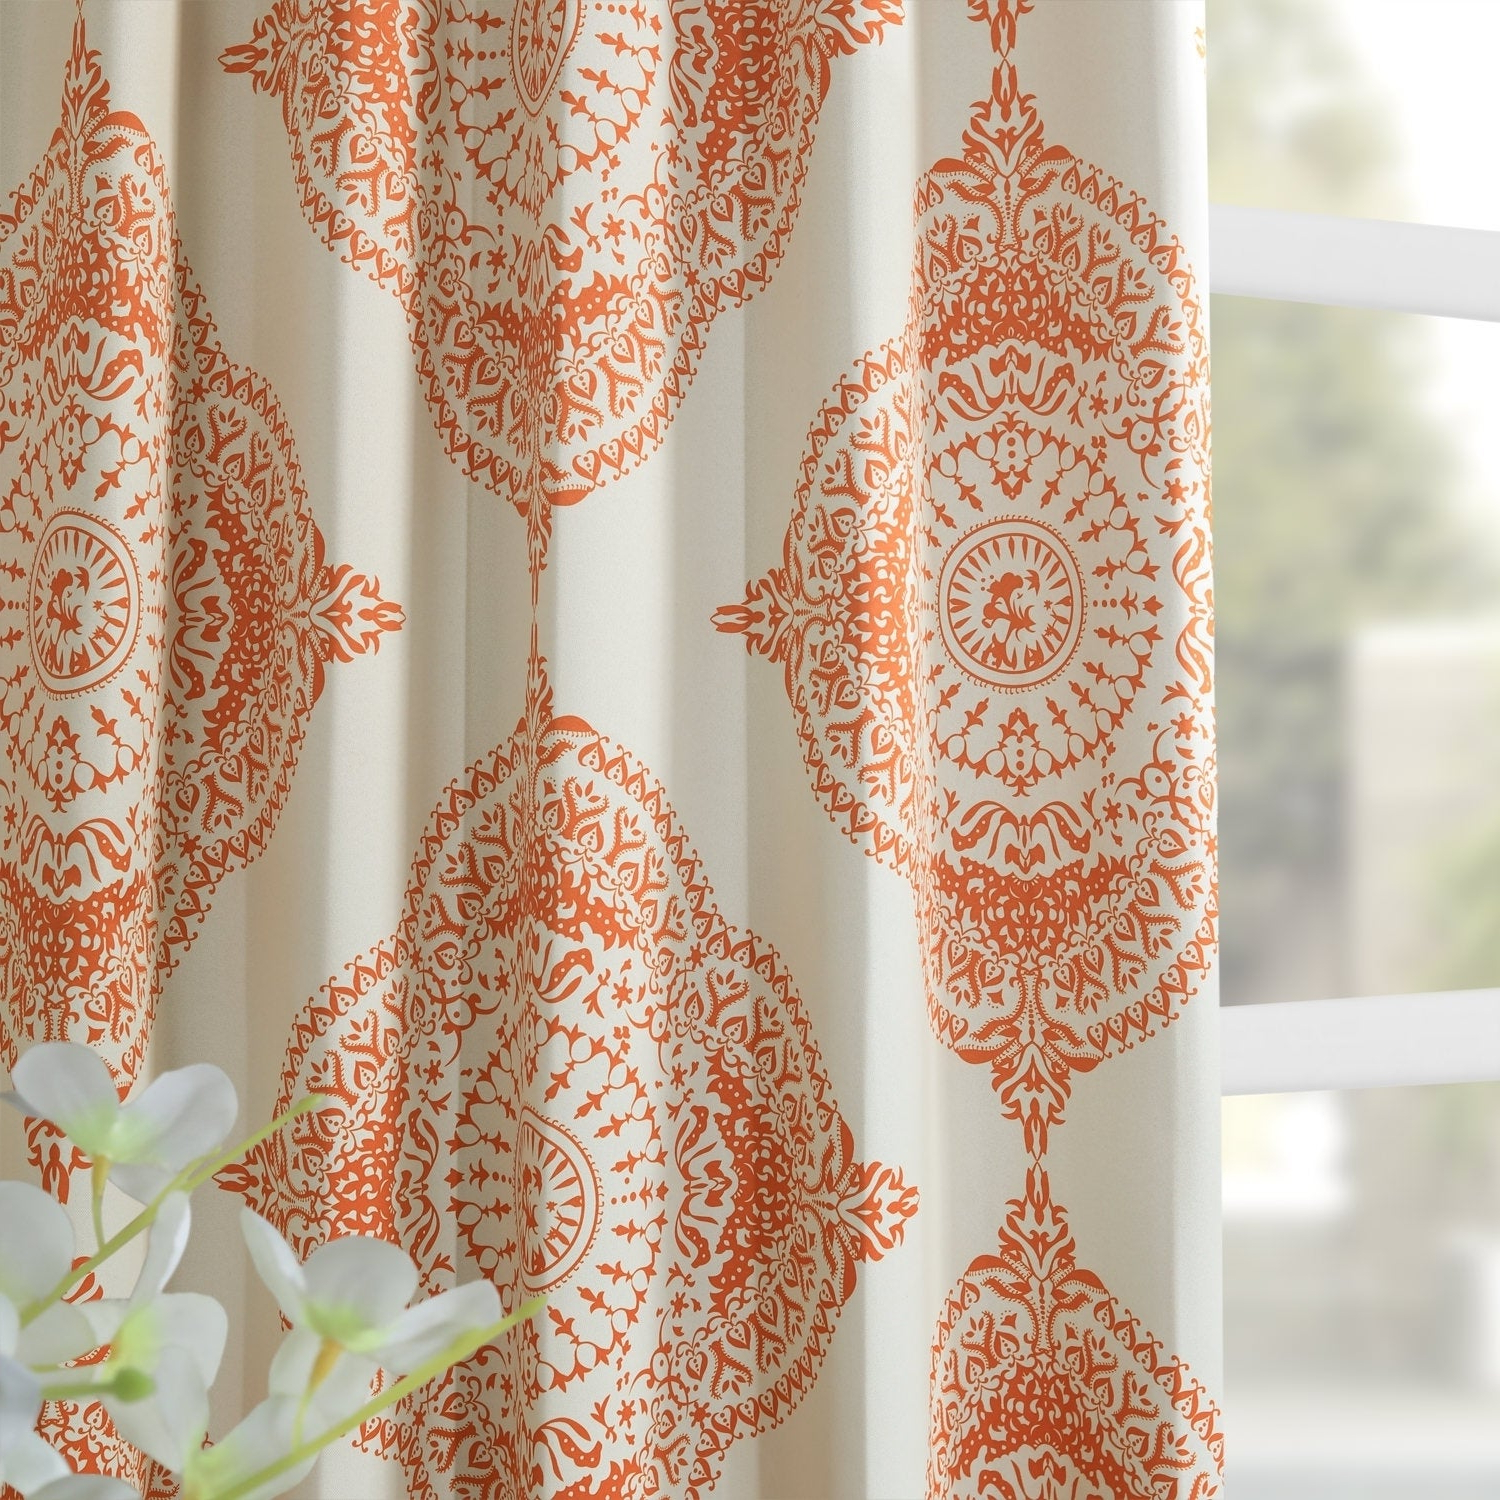 Shop Moroccan Style Thermal Insulated Blackout Curtain Panel With Regard To 2021 Moroccan Style Thermal Insulated Blackout Curtain Panel Pairs (View 16 of 20)